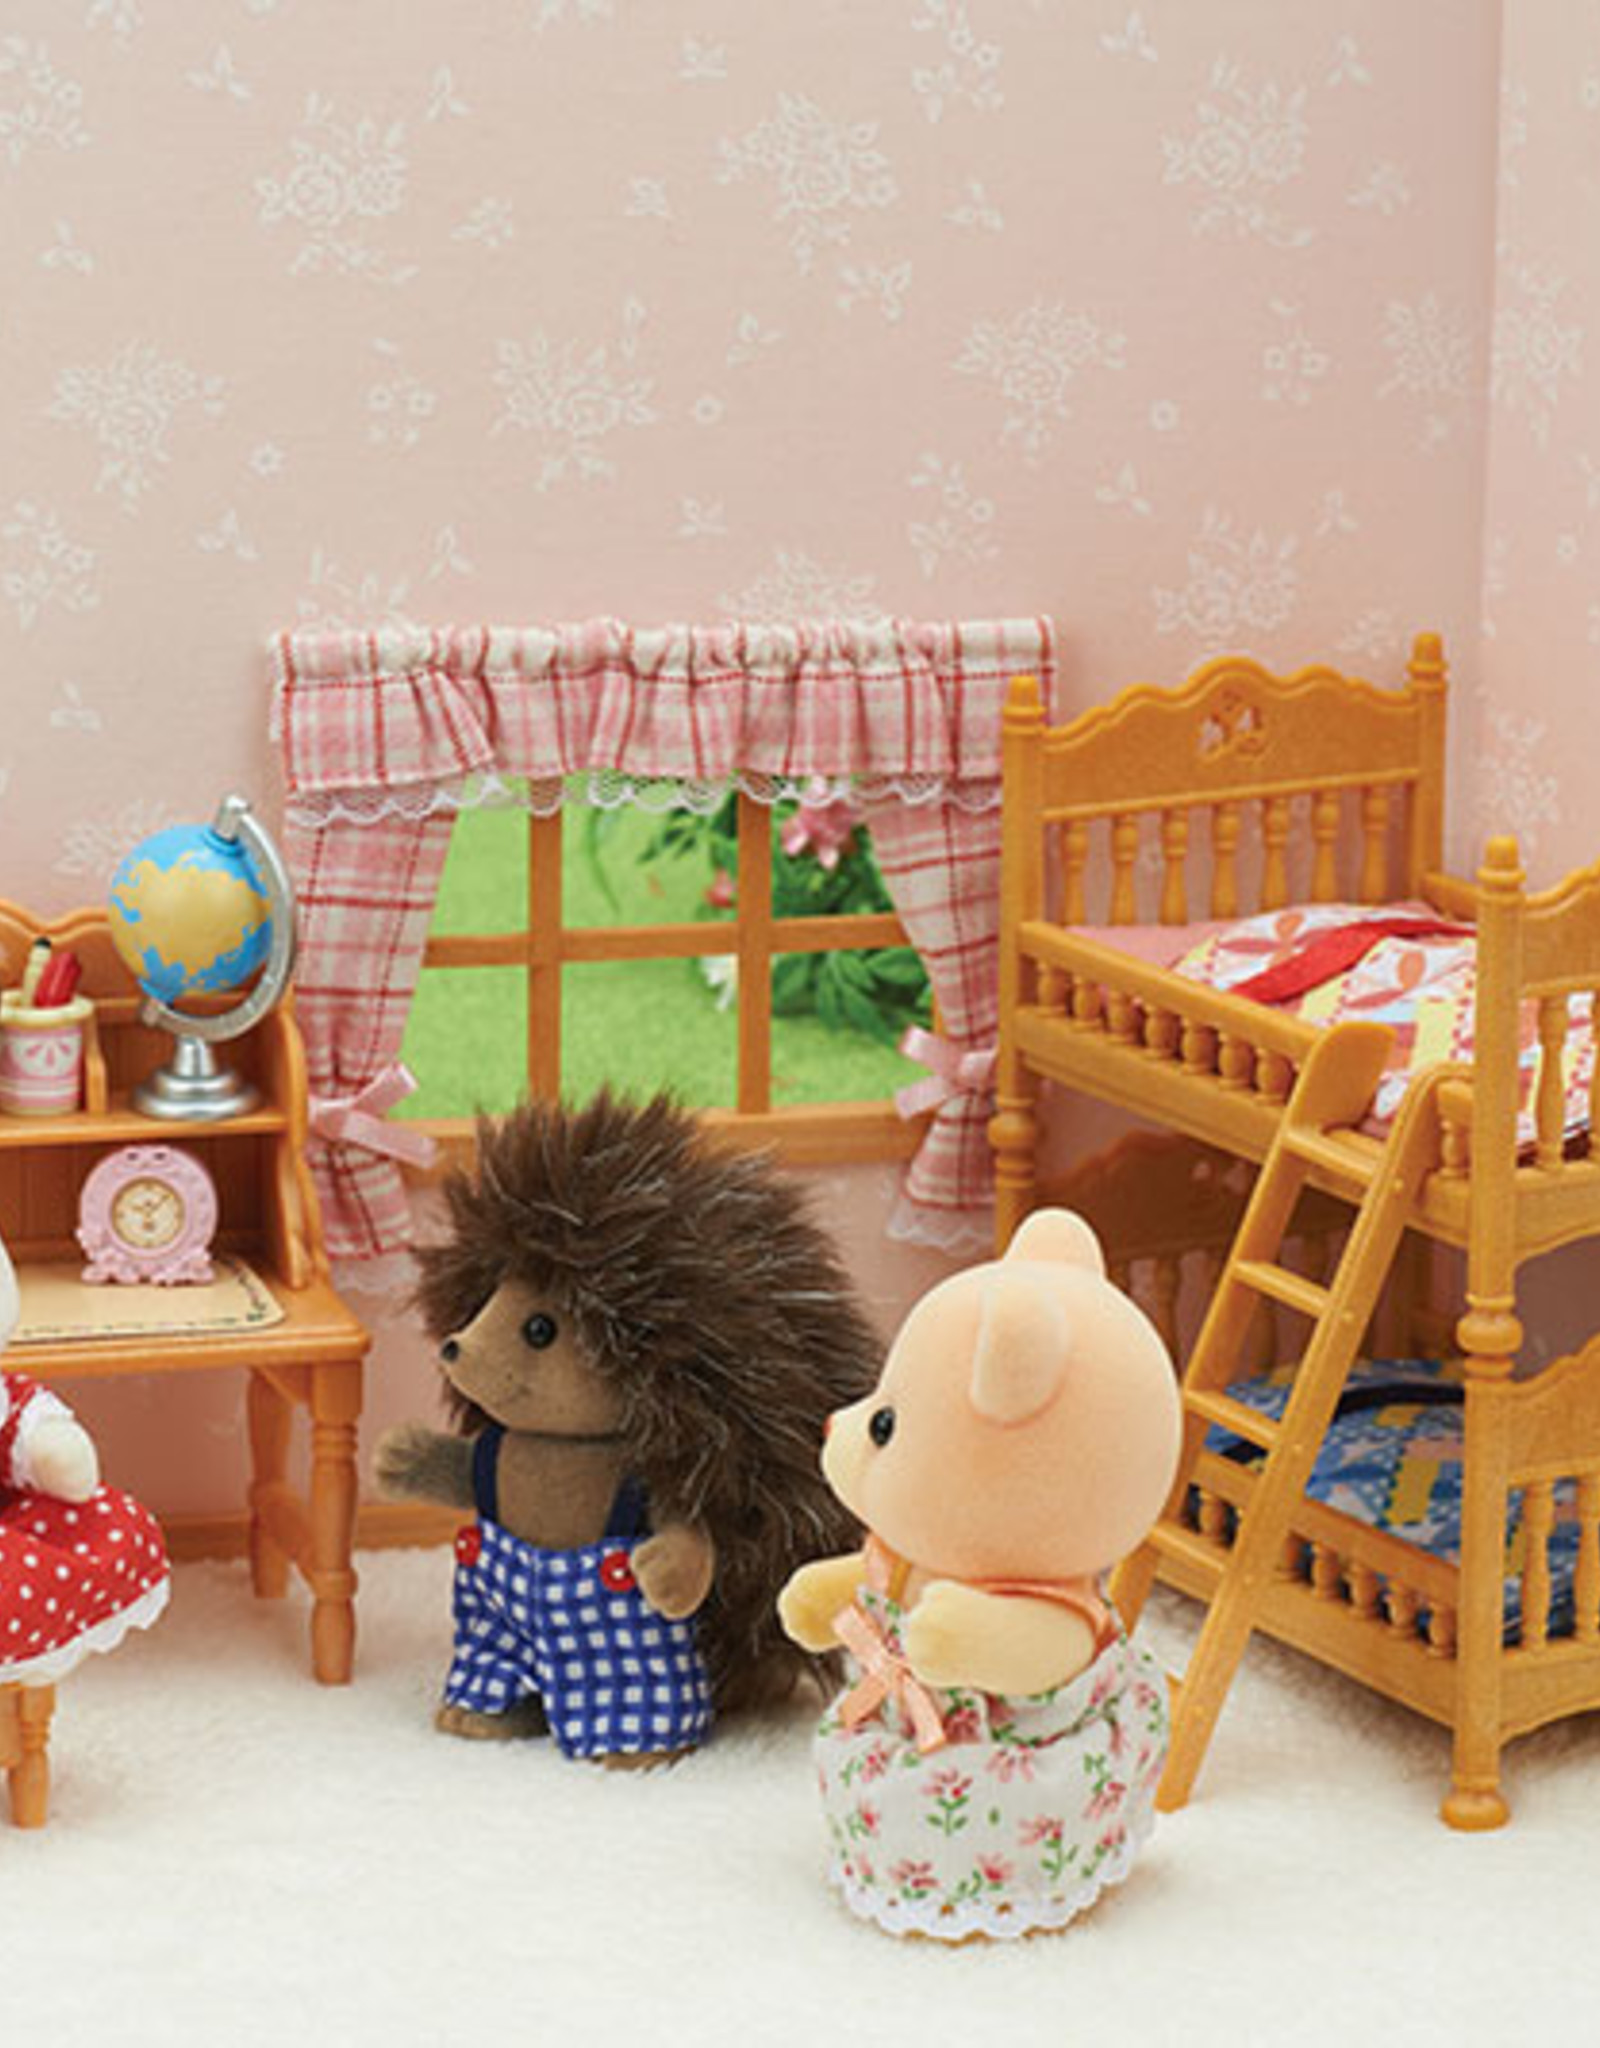 Calico Critters CC Children's Bedroom Set